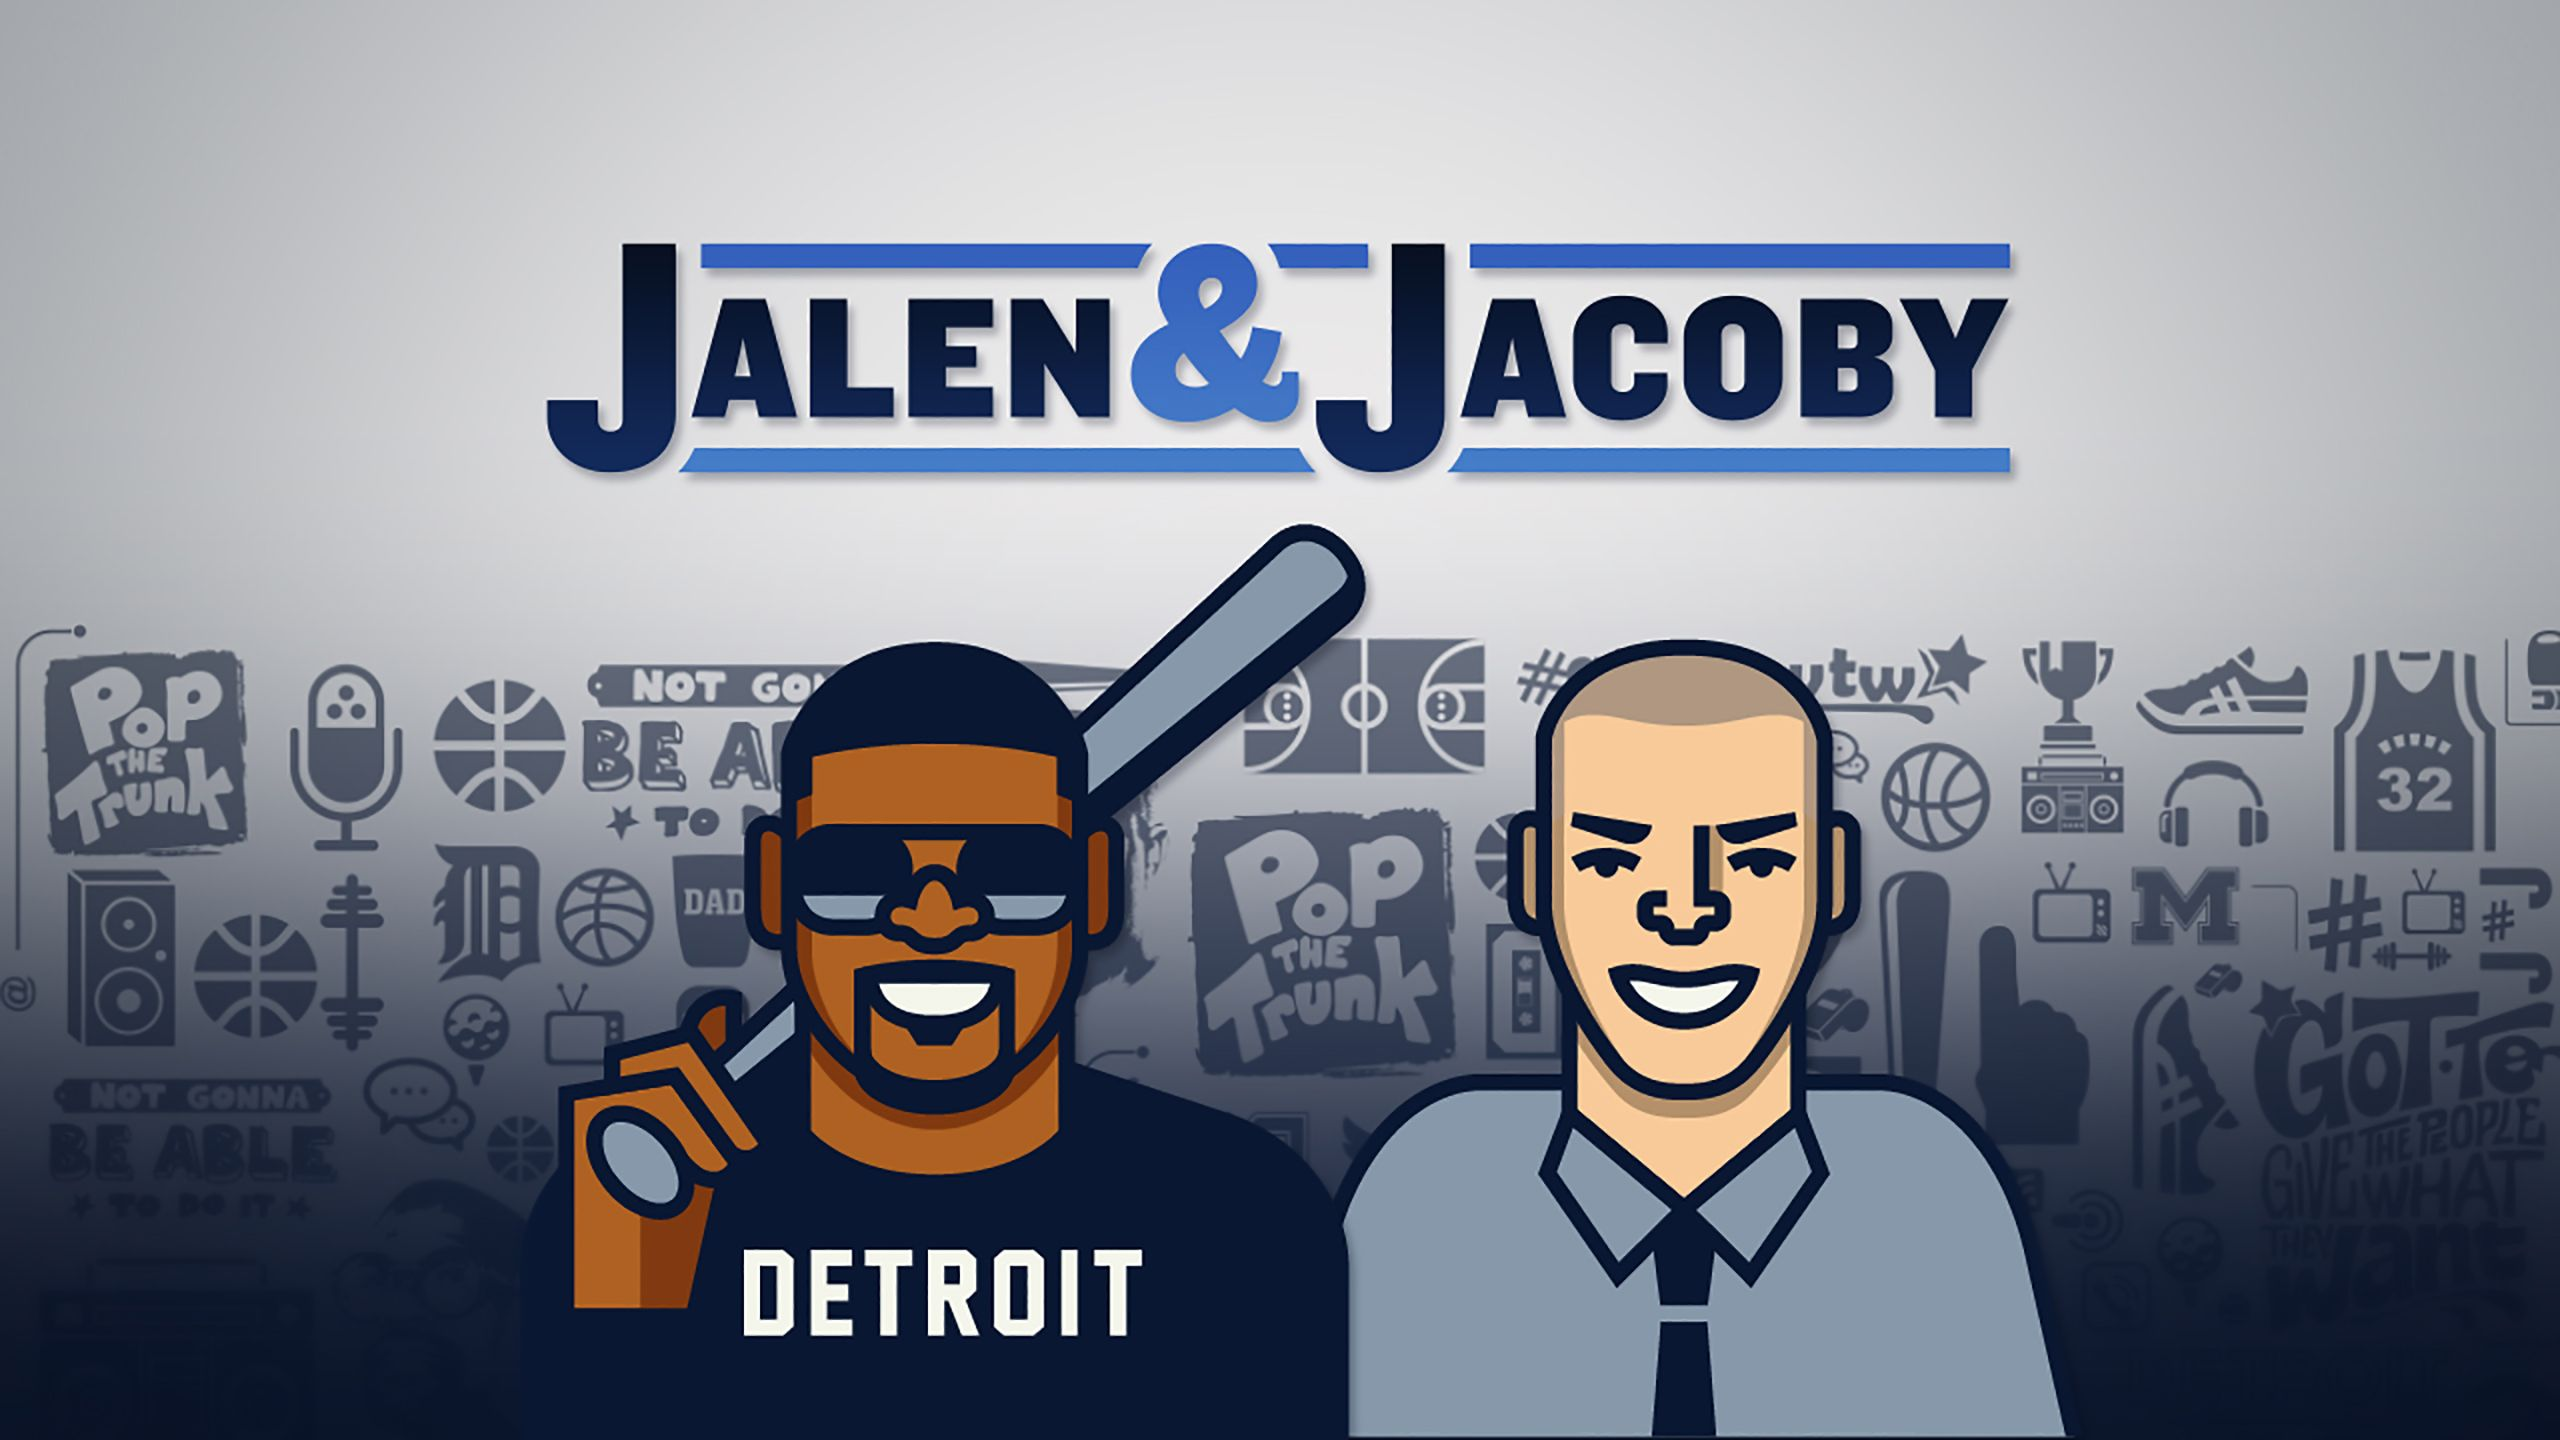 Wed, 4/25 - Jalen & Jacoby